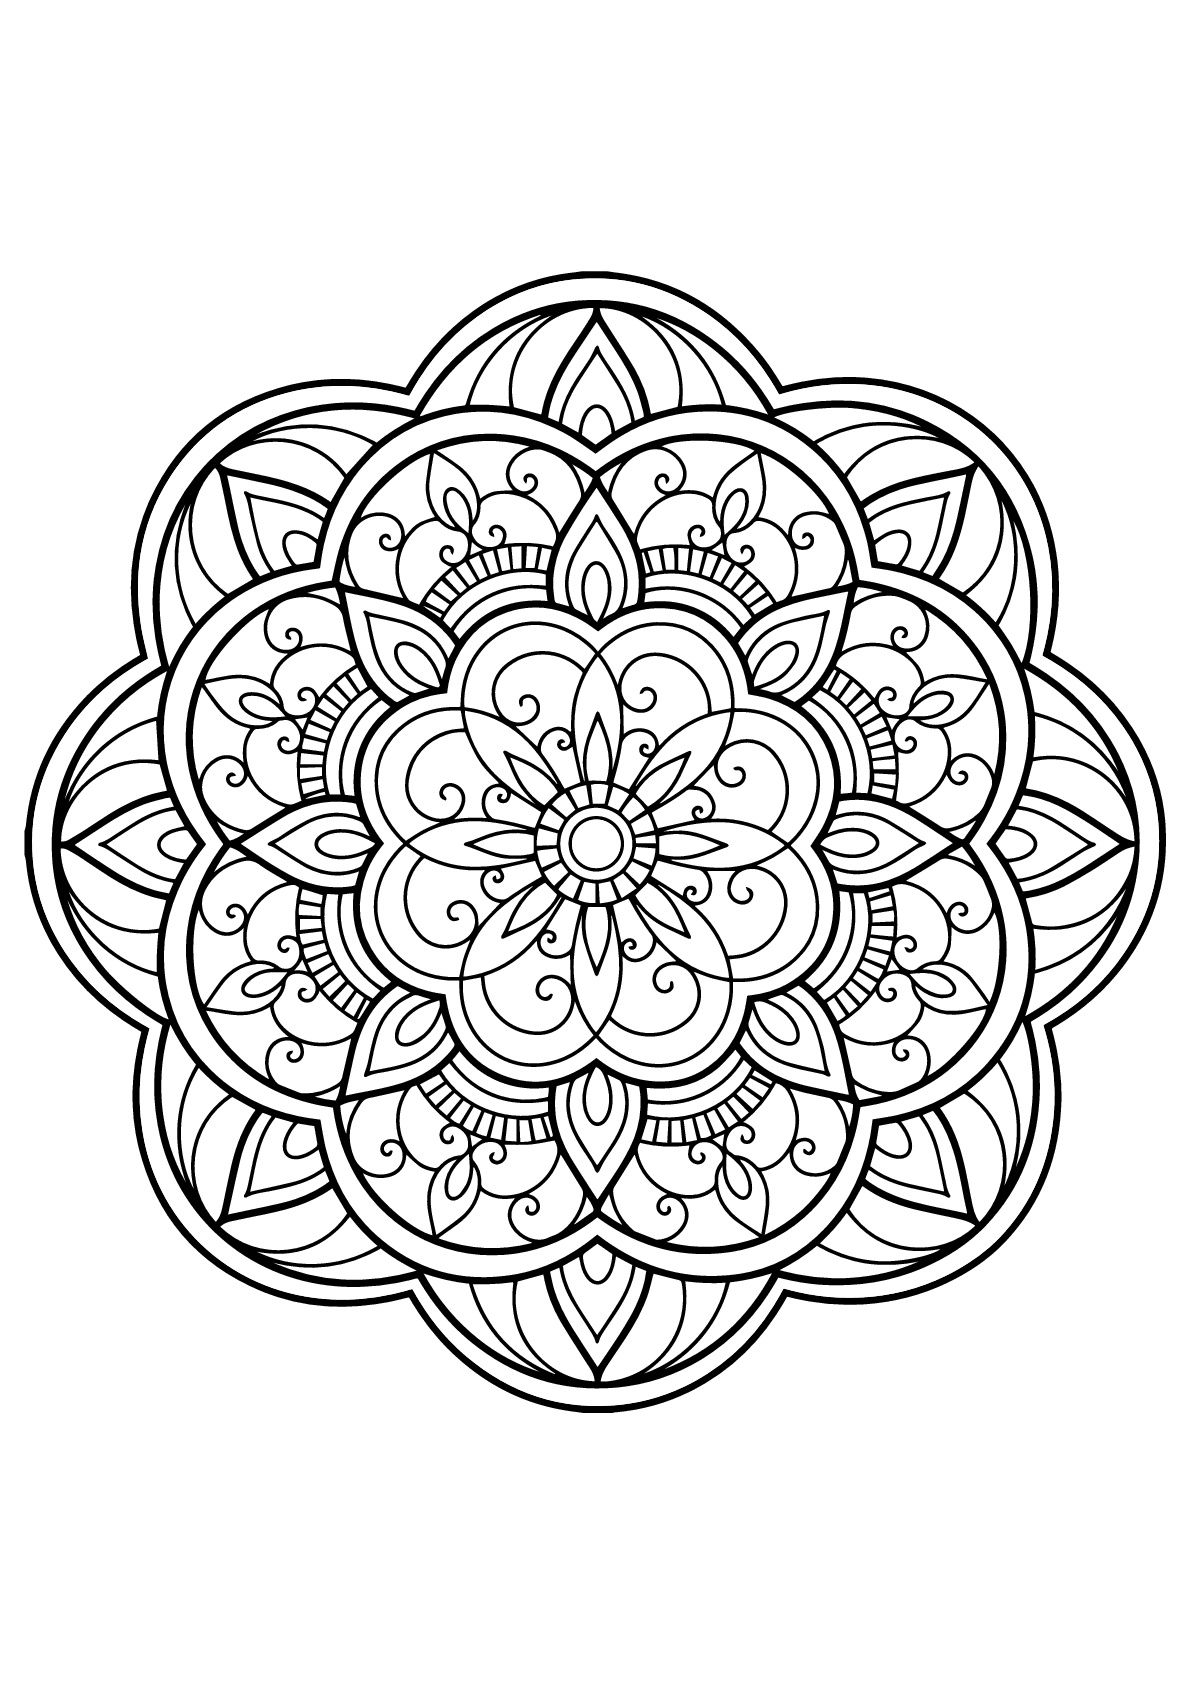 Mandala From Free Book For 14 From The Gallery Mandalas Coloring Book Pages Mandala Coloring Pages Printable Coloring Book